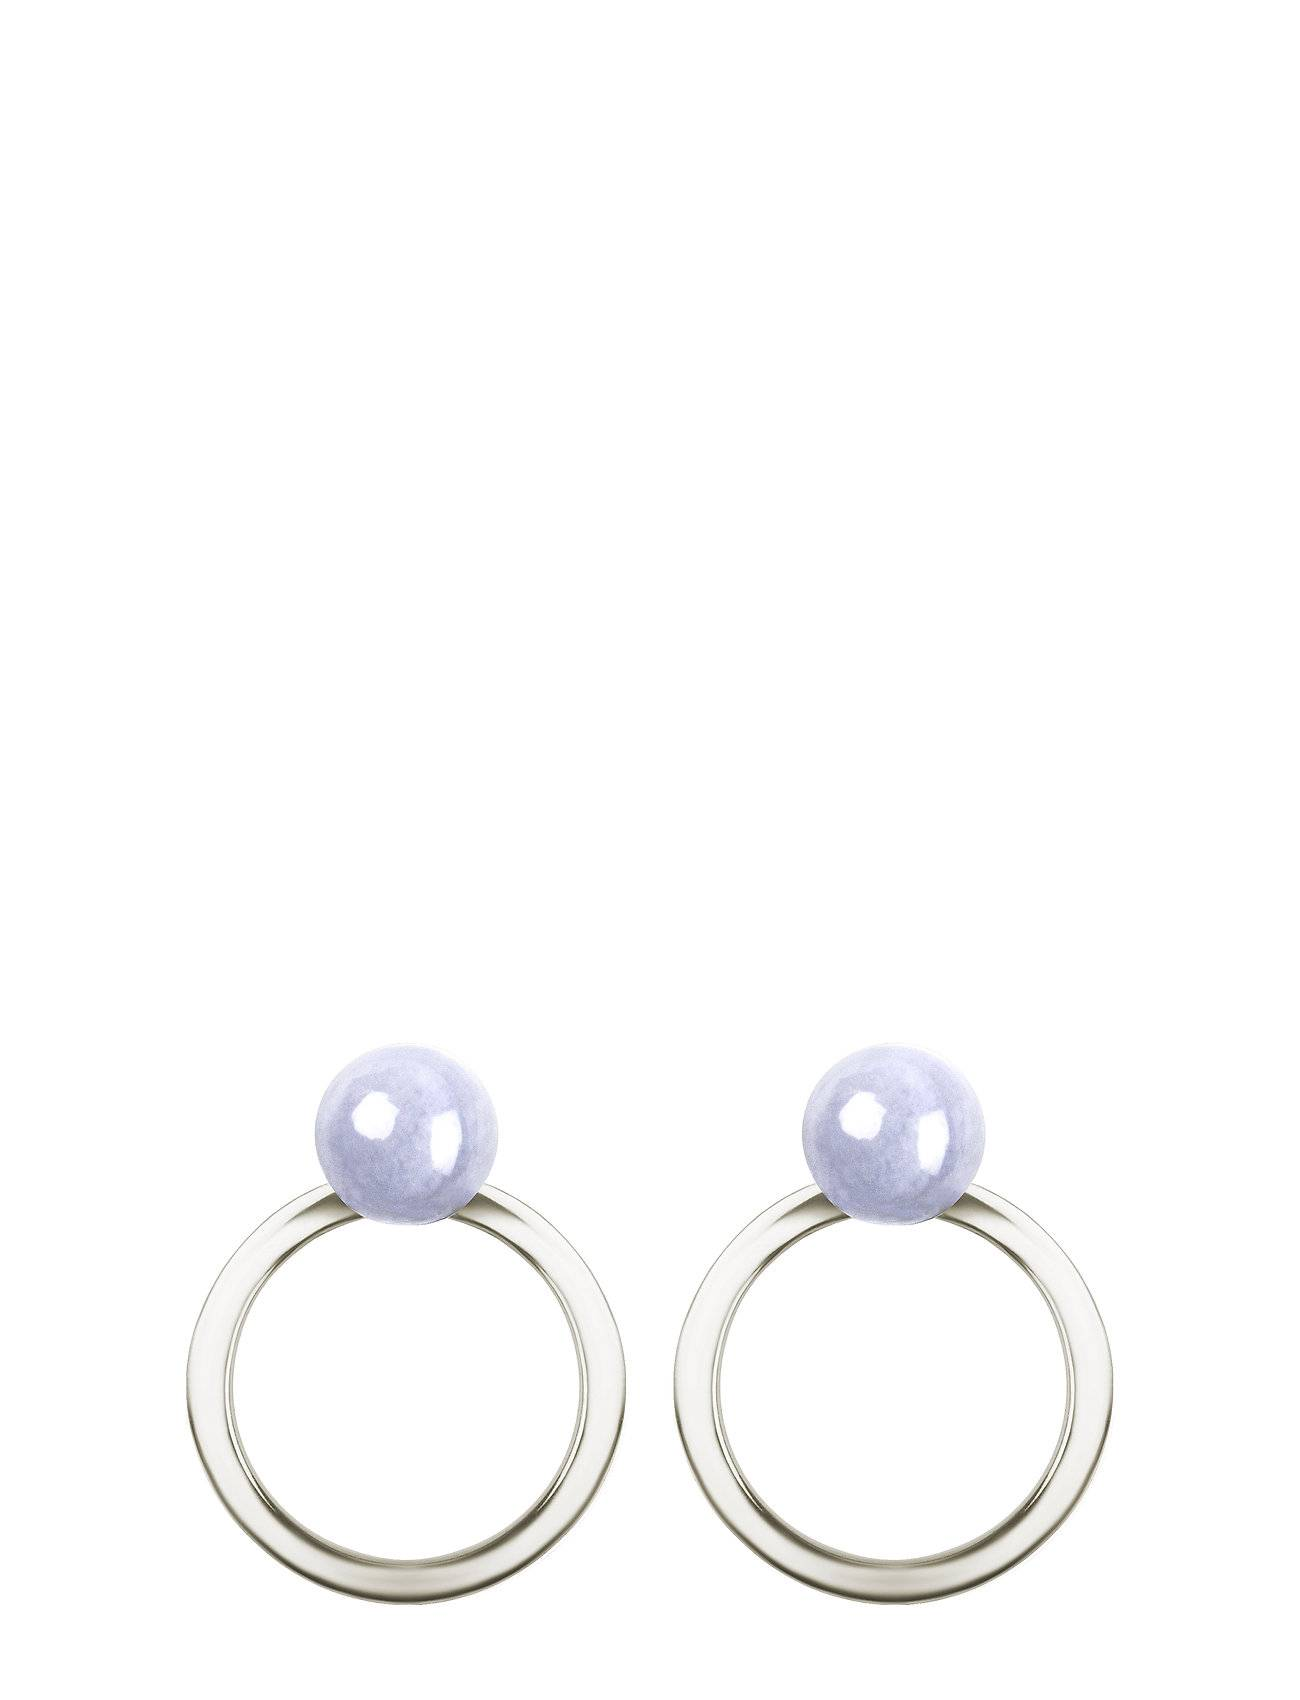 Syster P Planet Earrings Silver Blue Lace